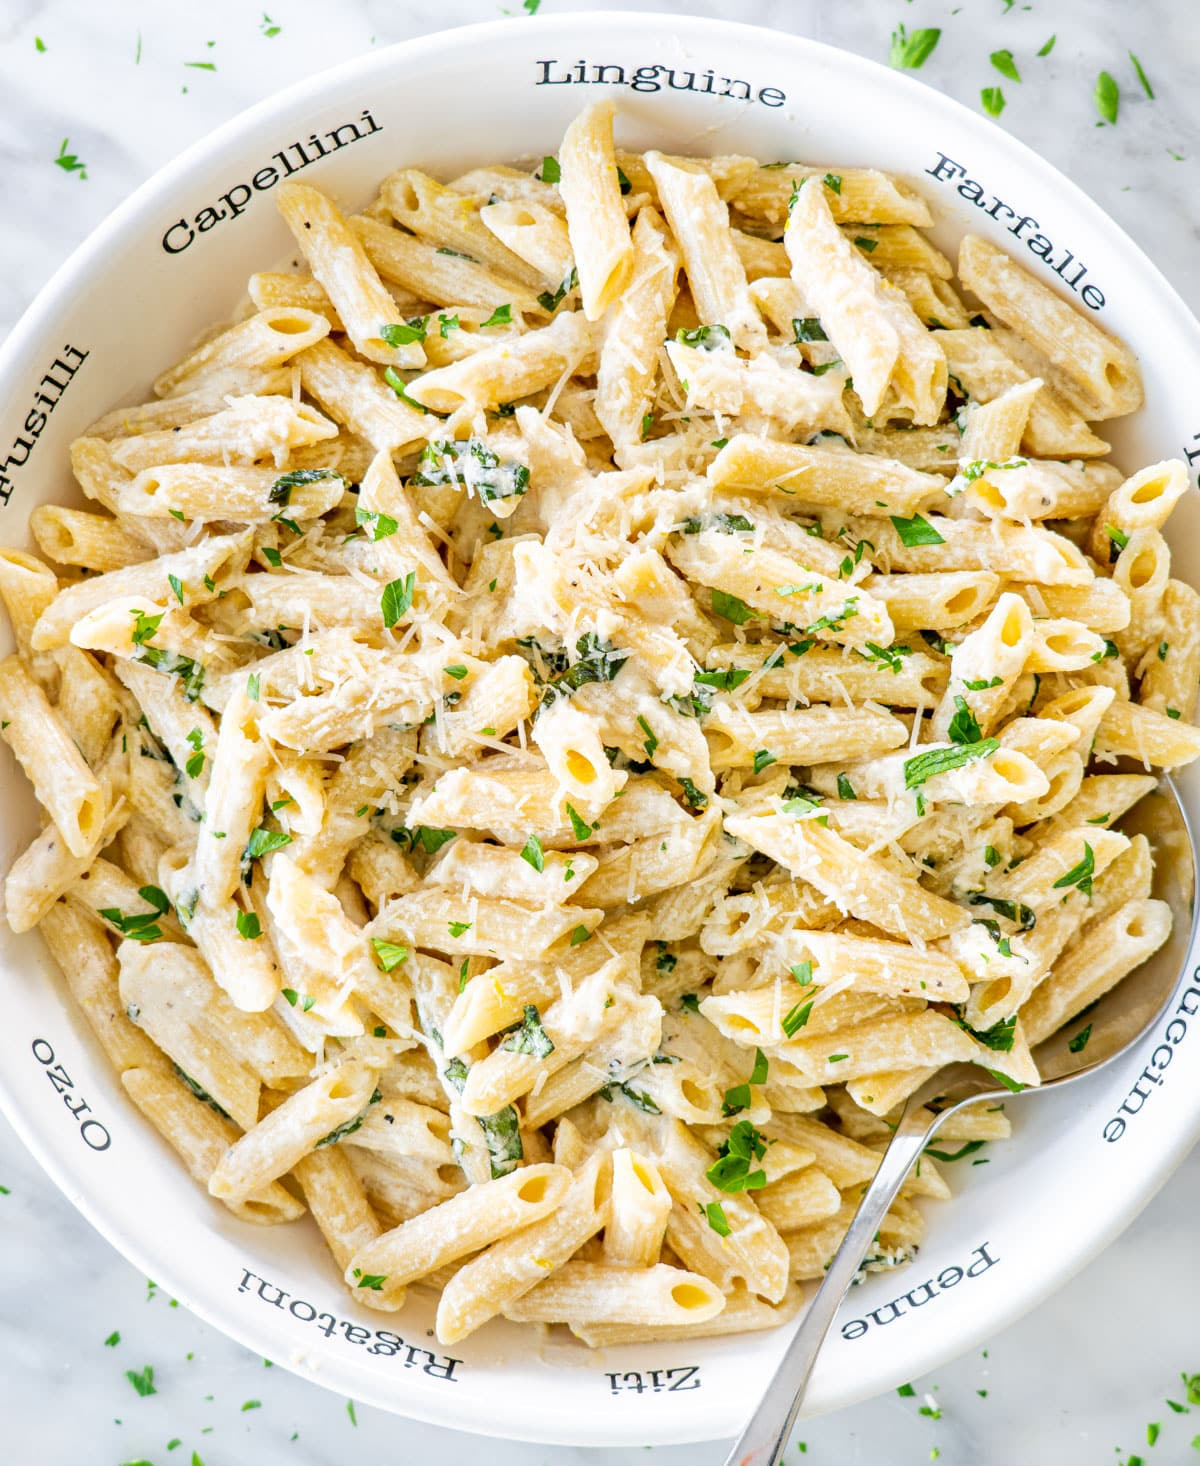 creamy goat cheese pasta in a pasta bowl garnished with fresh parsley and parmesan cheese